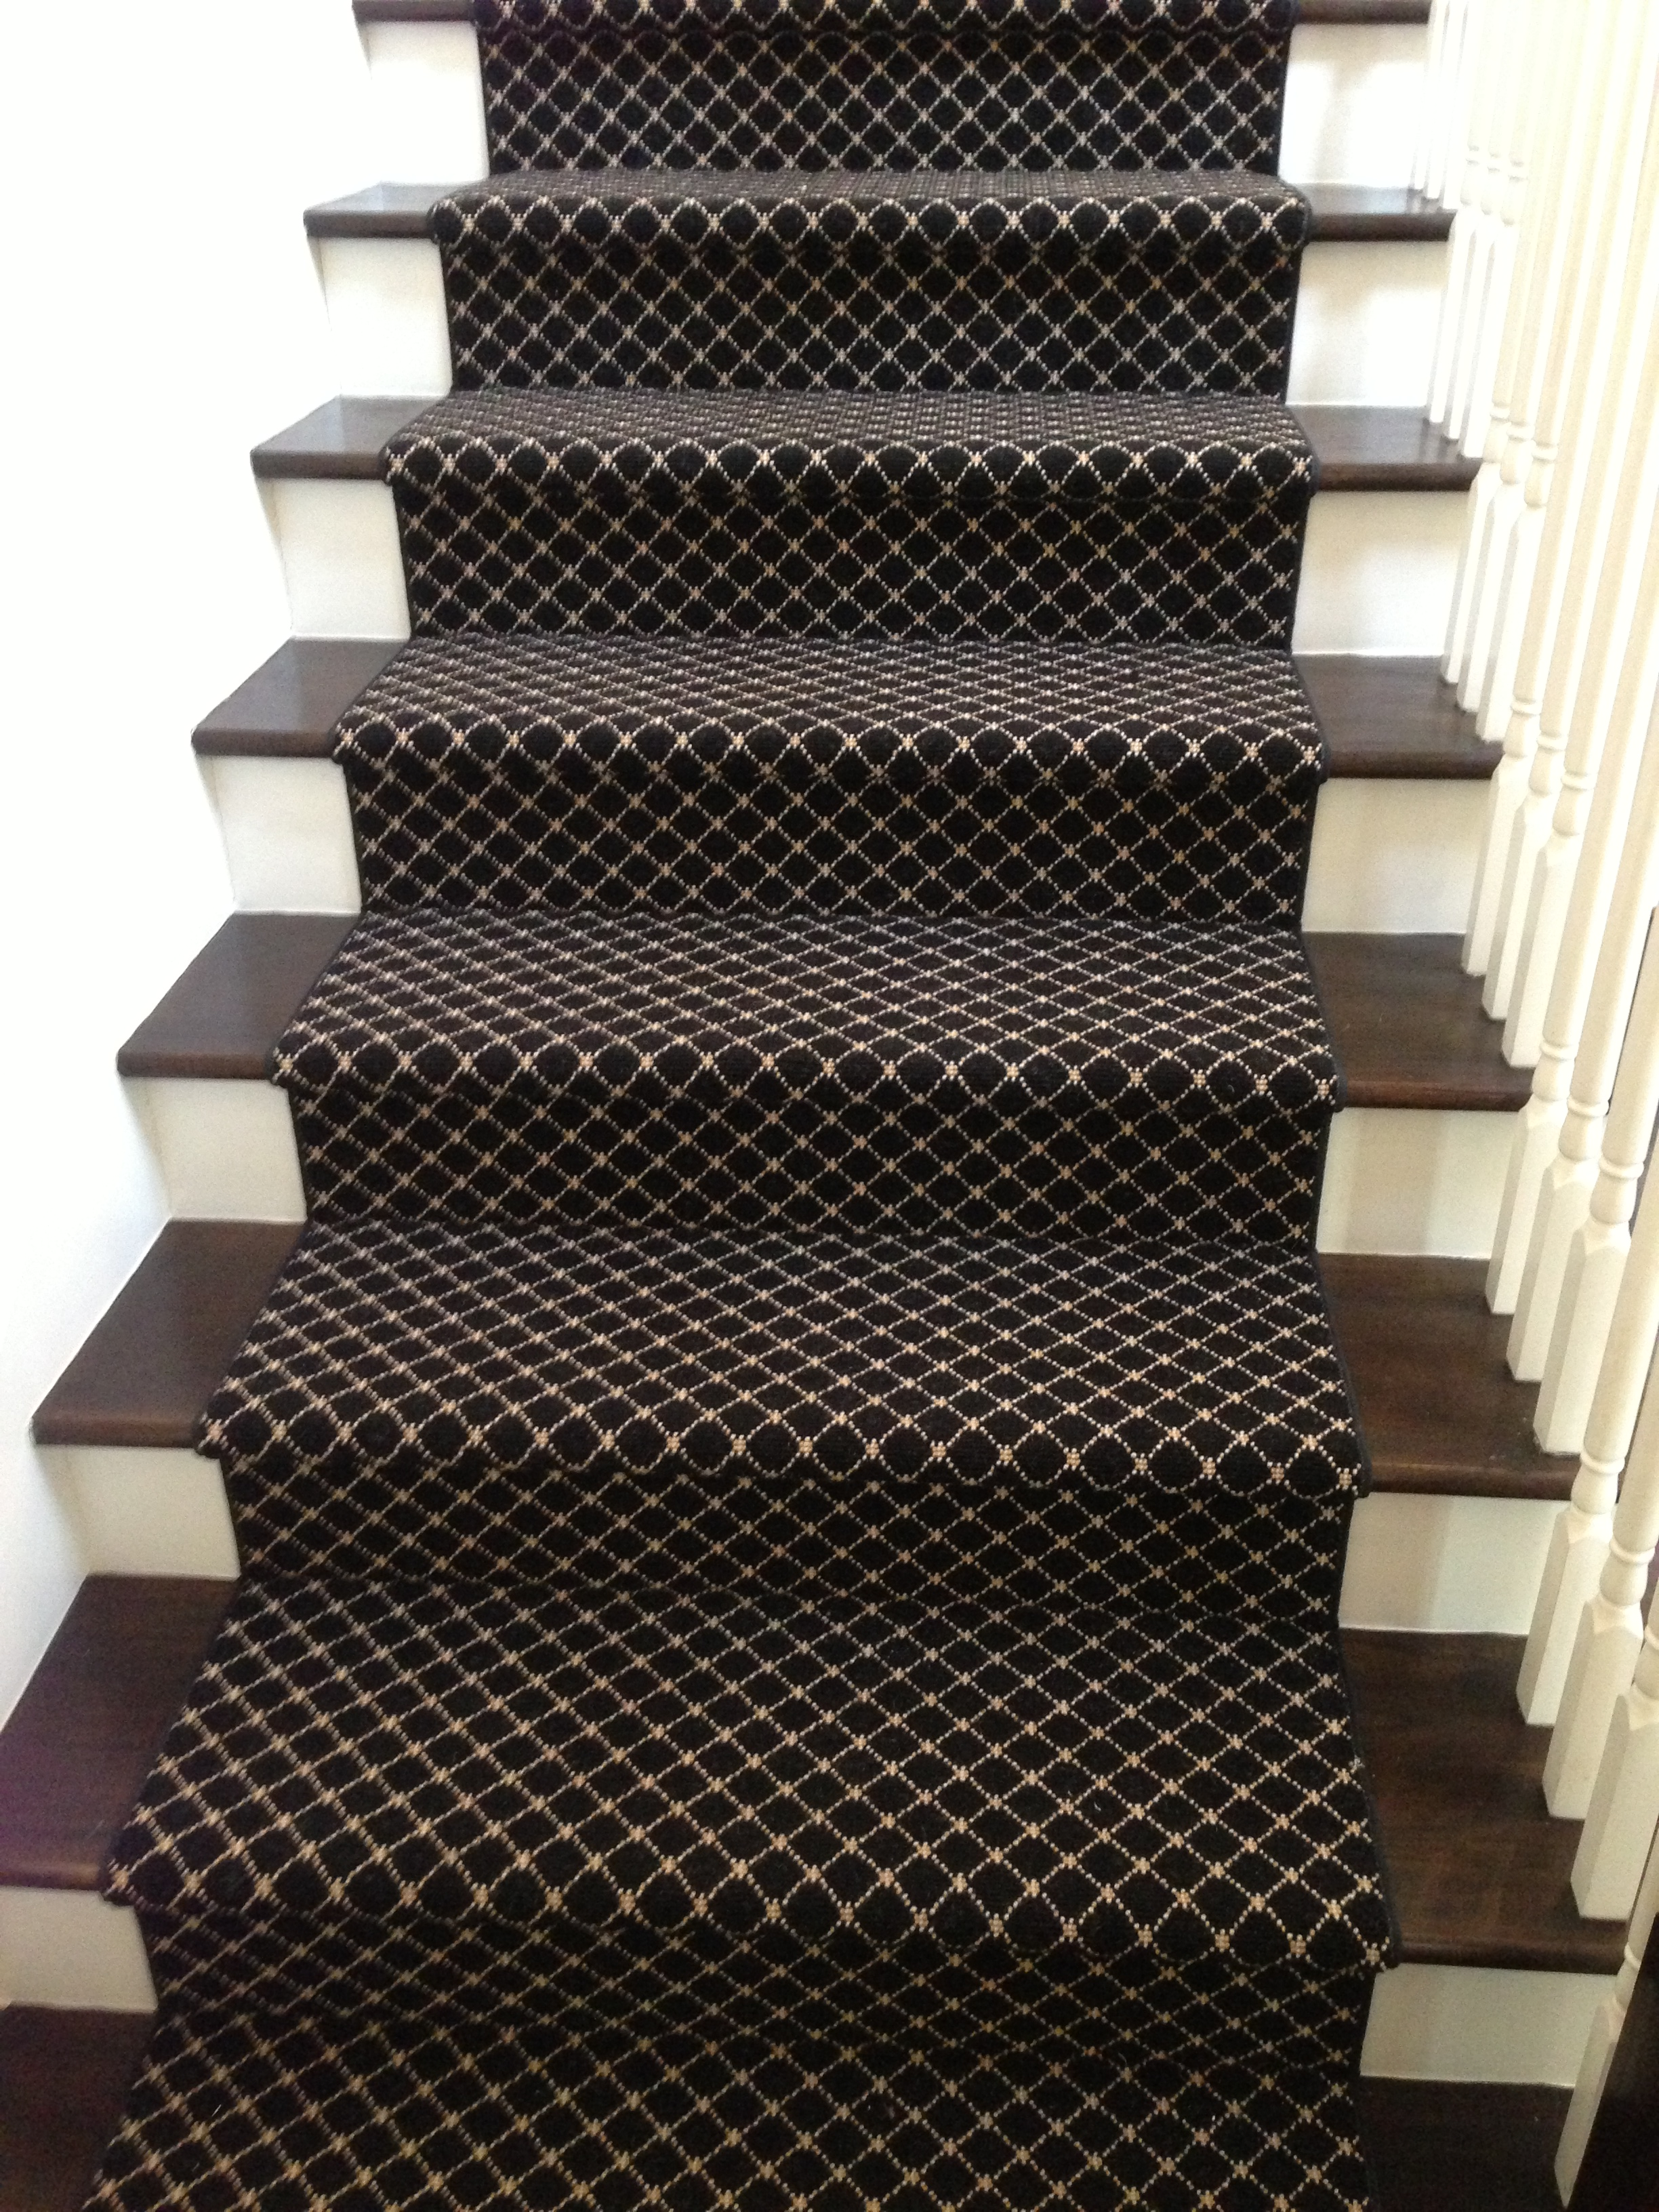 Should I Carpet My Stairs With The Same